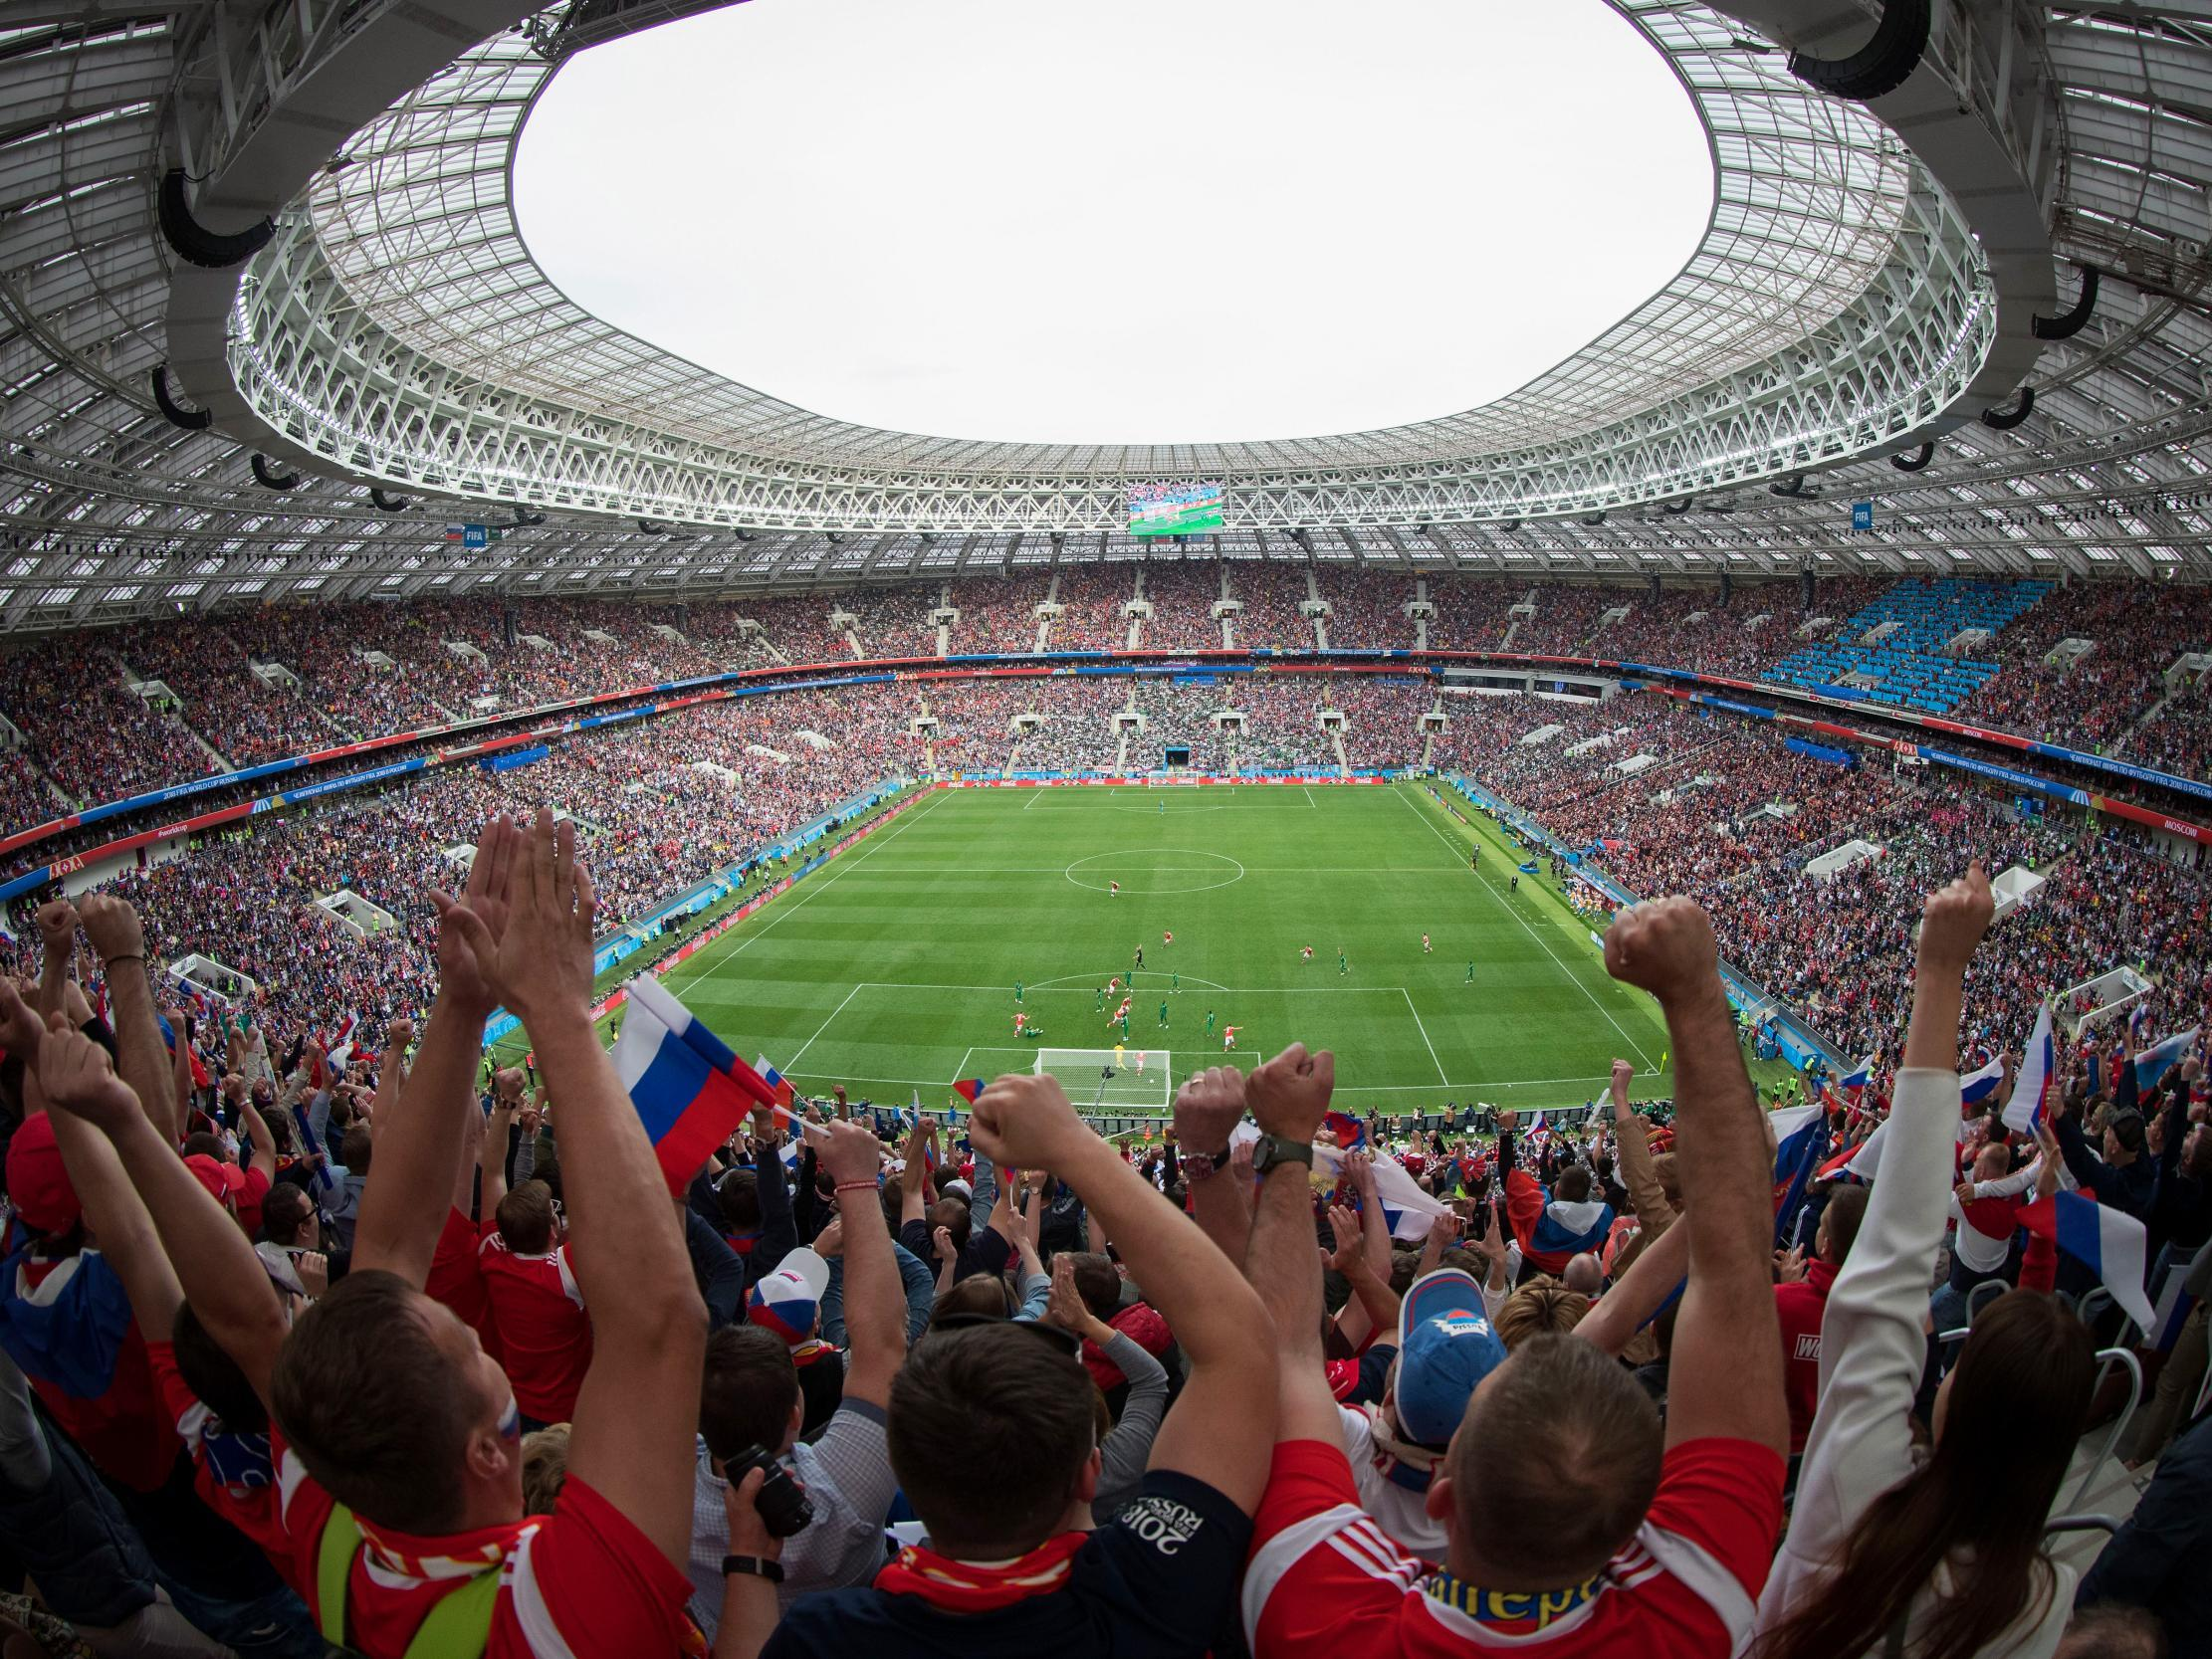 Russia claims it foiled terrorist plans to use drones to attack supporters at last summer's World Cup